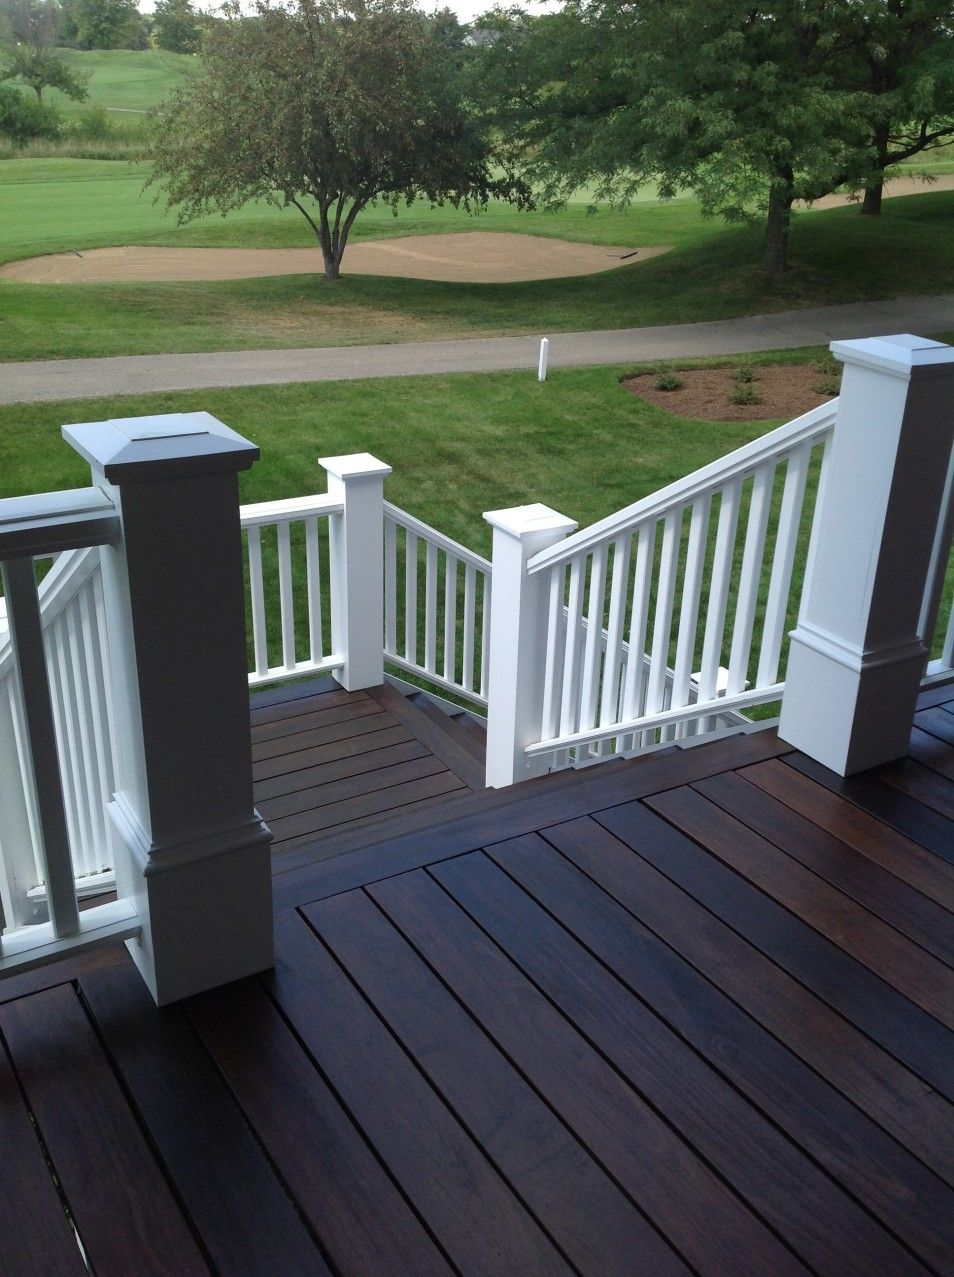 Simple backyard landscaping in cool deck ideas at modern house simple backyard landscaping in cool deck ideas at modern house cool deck paint before after cool baanklon Choice Image